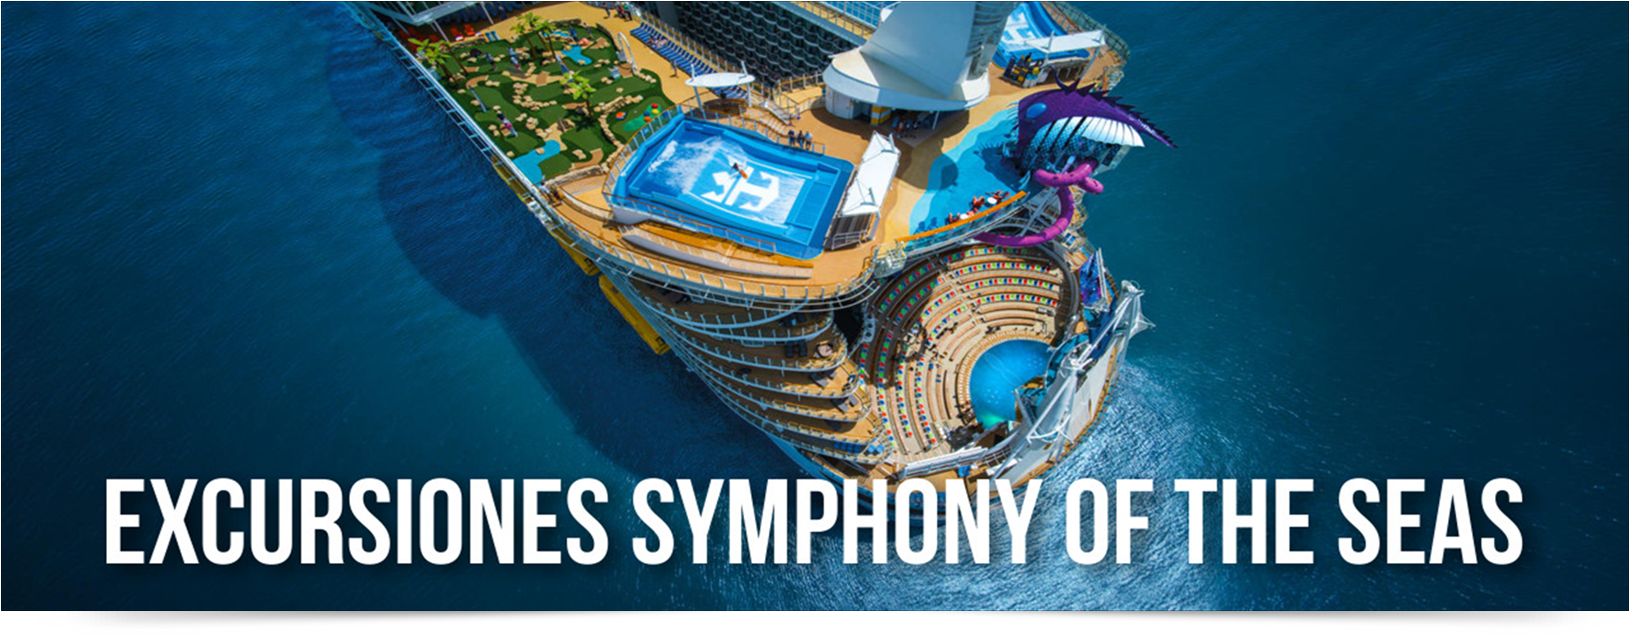 EXCURSIONES CRUCERO SYMPHONY OF THE SEAS